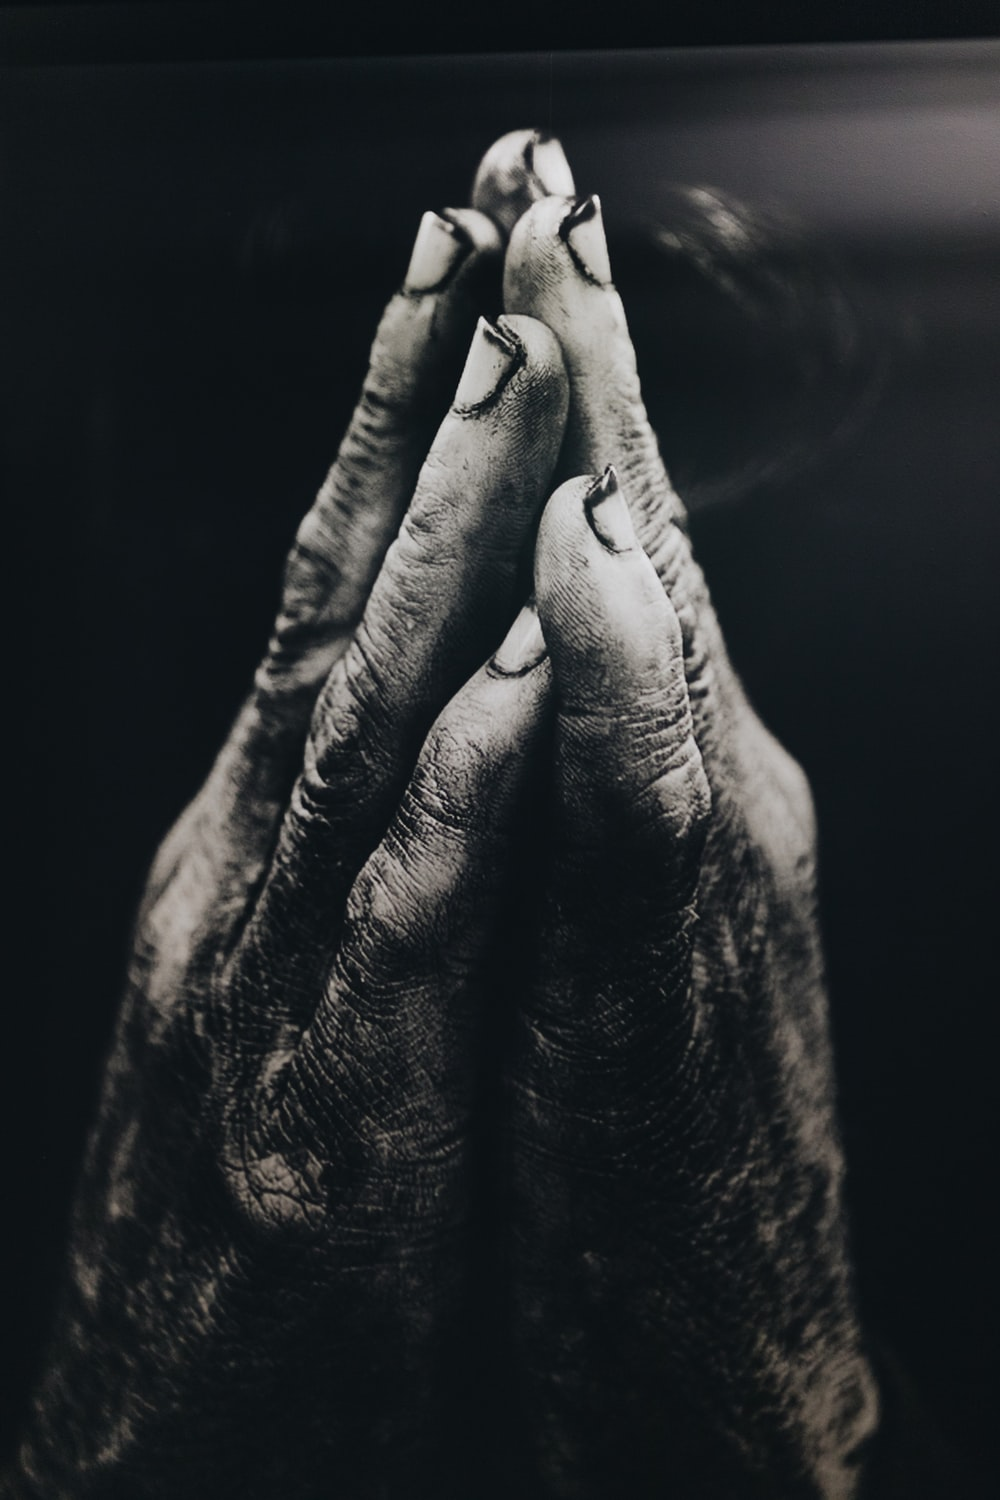 grayscale photography of praying hands